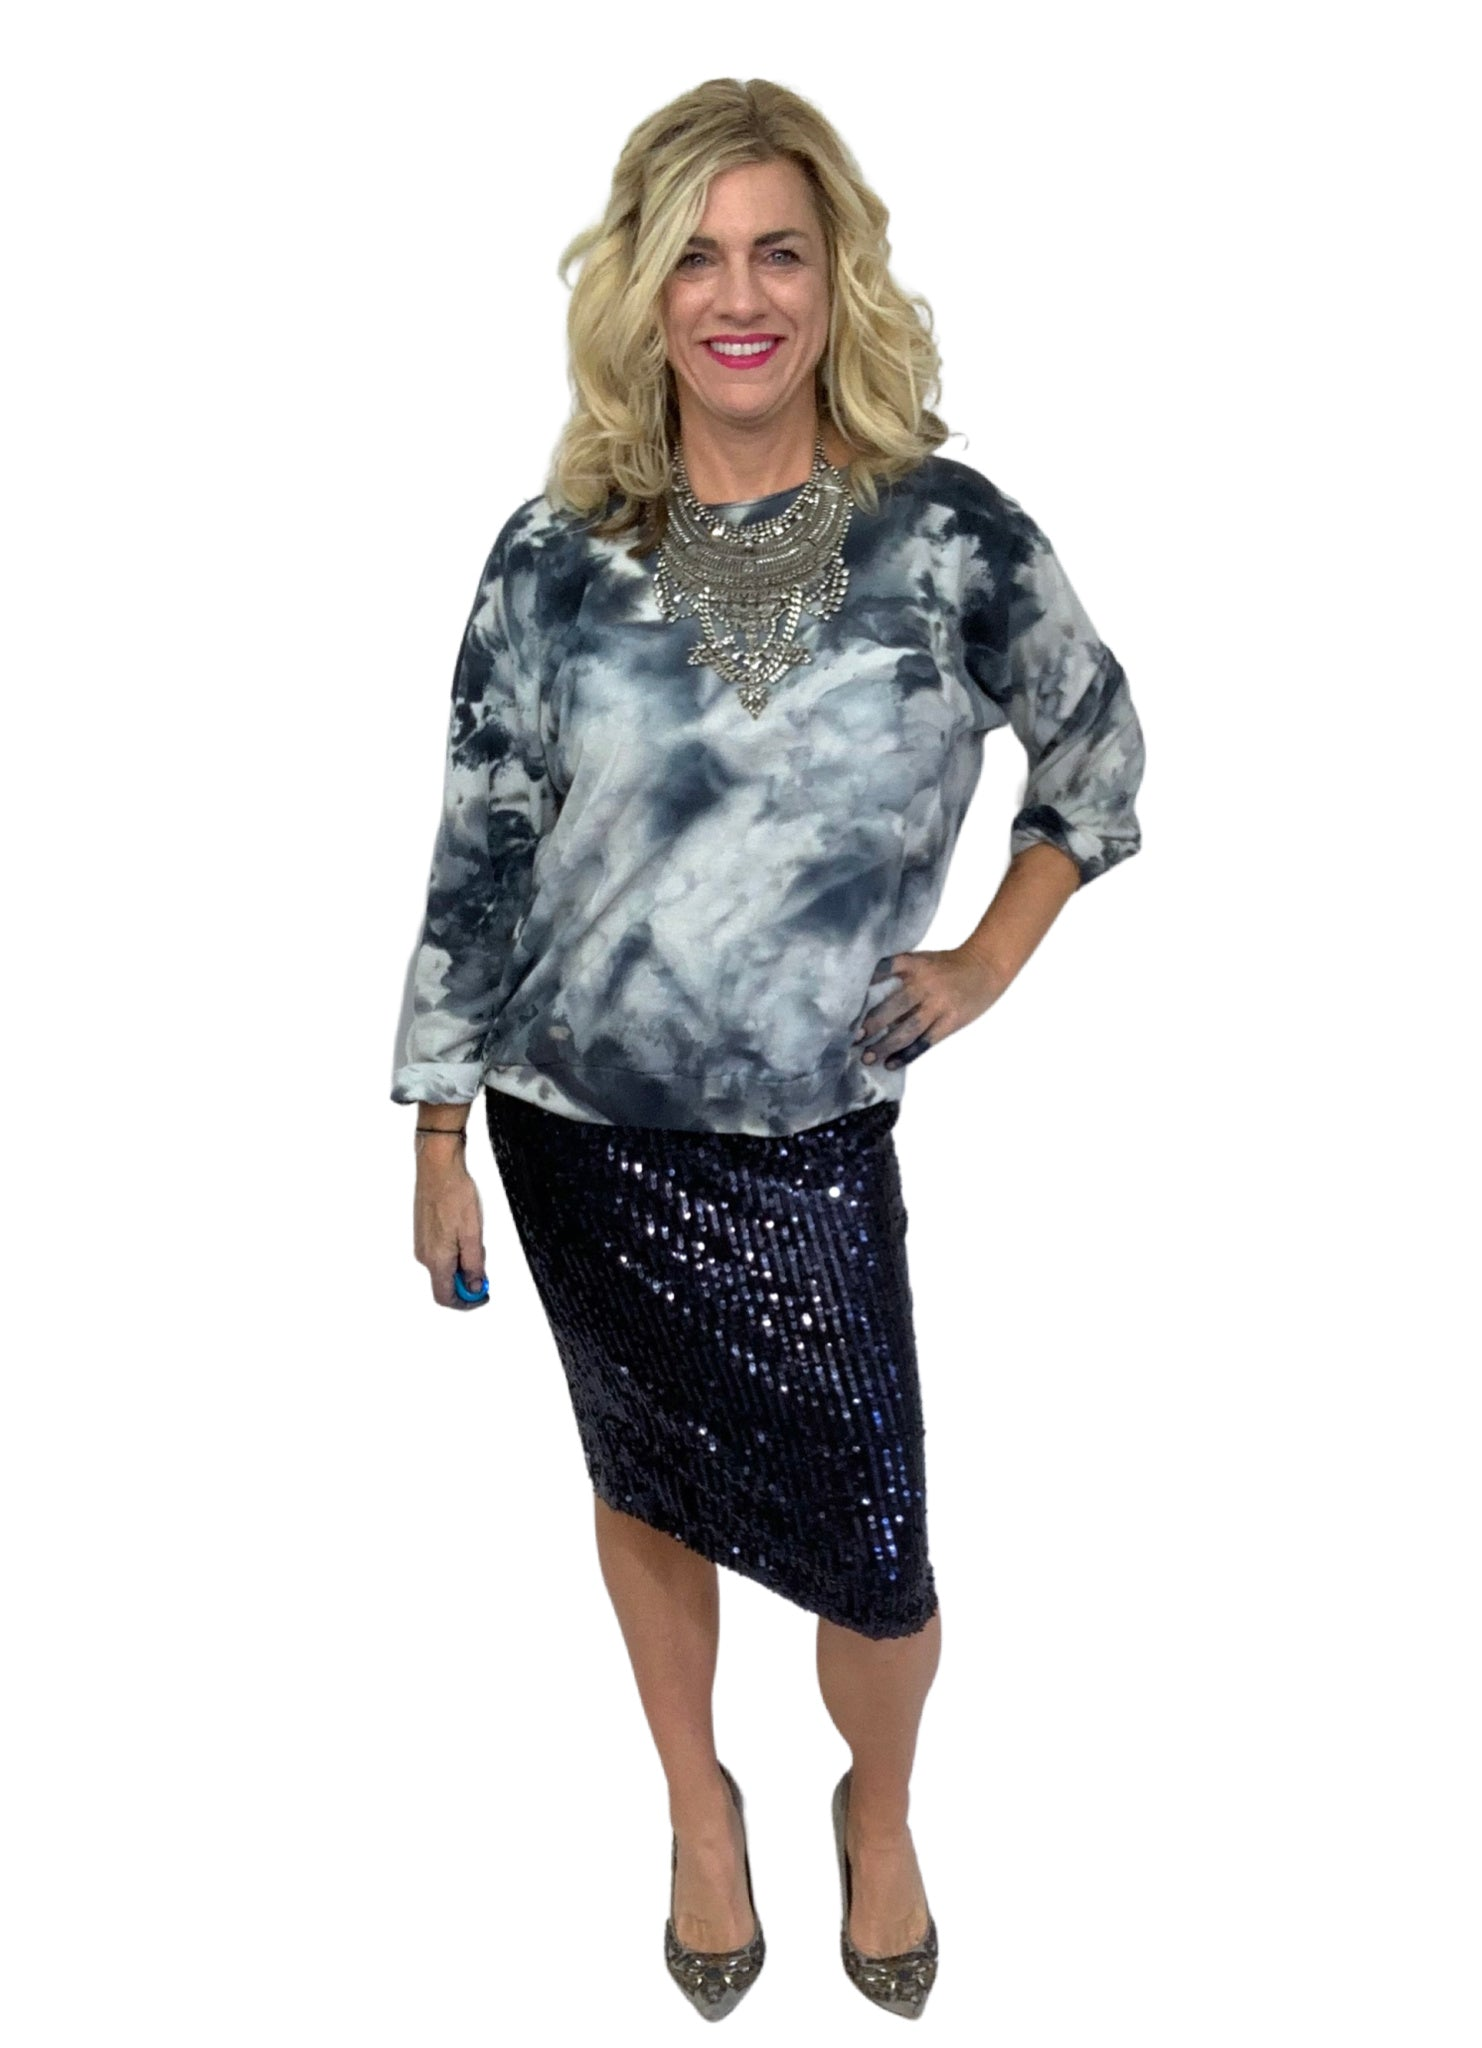 Hand Dyed Perfect Sweatshirt in Moon Stone - Limited Release - Dyetology